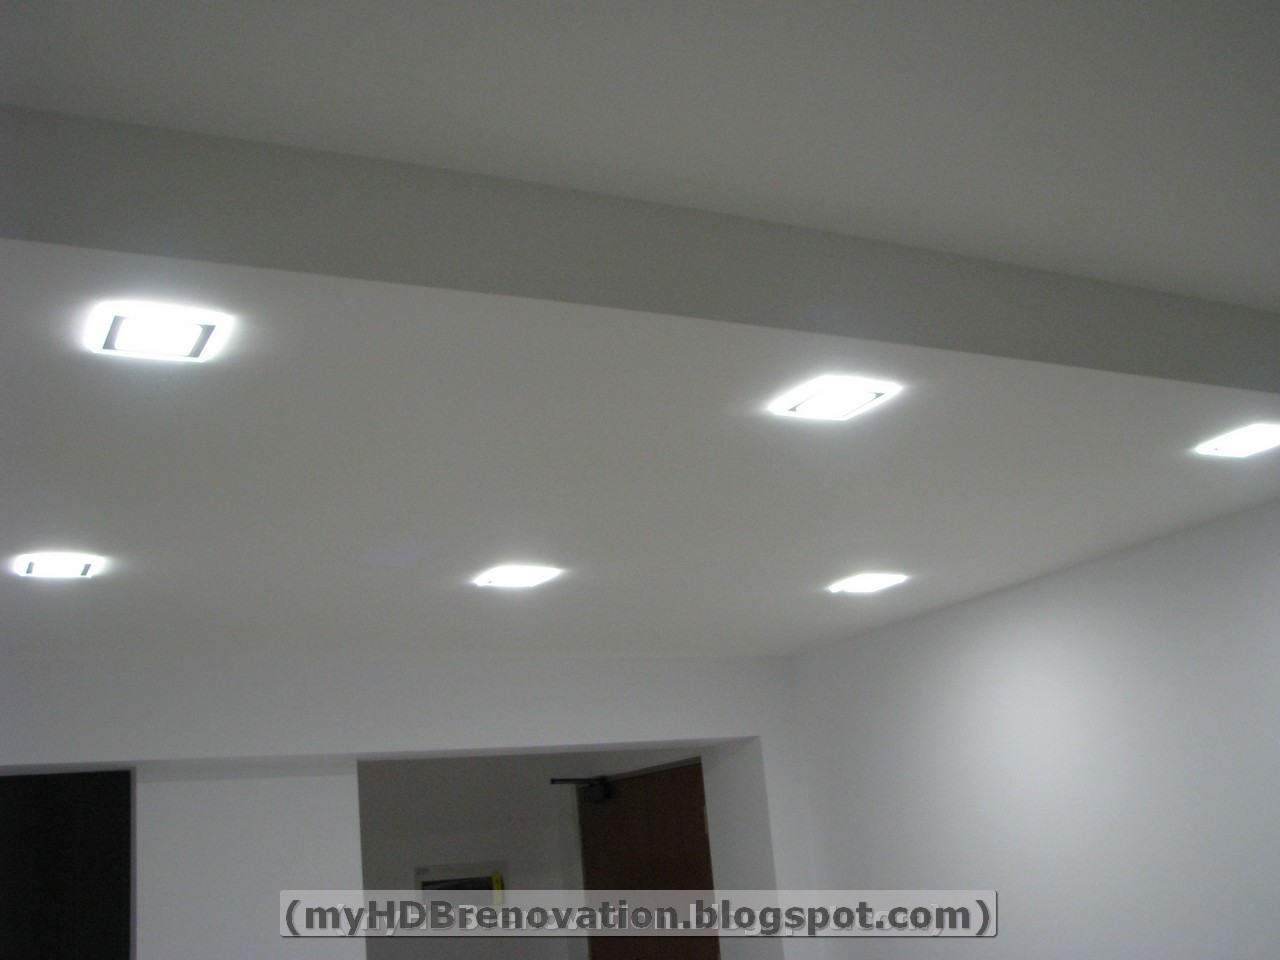 A Tale Of Hdb Renovation How I Chose My Plc Downlights